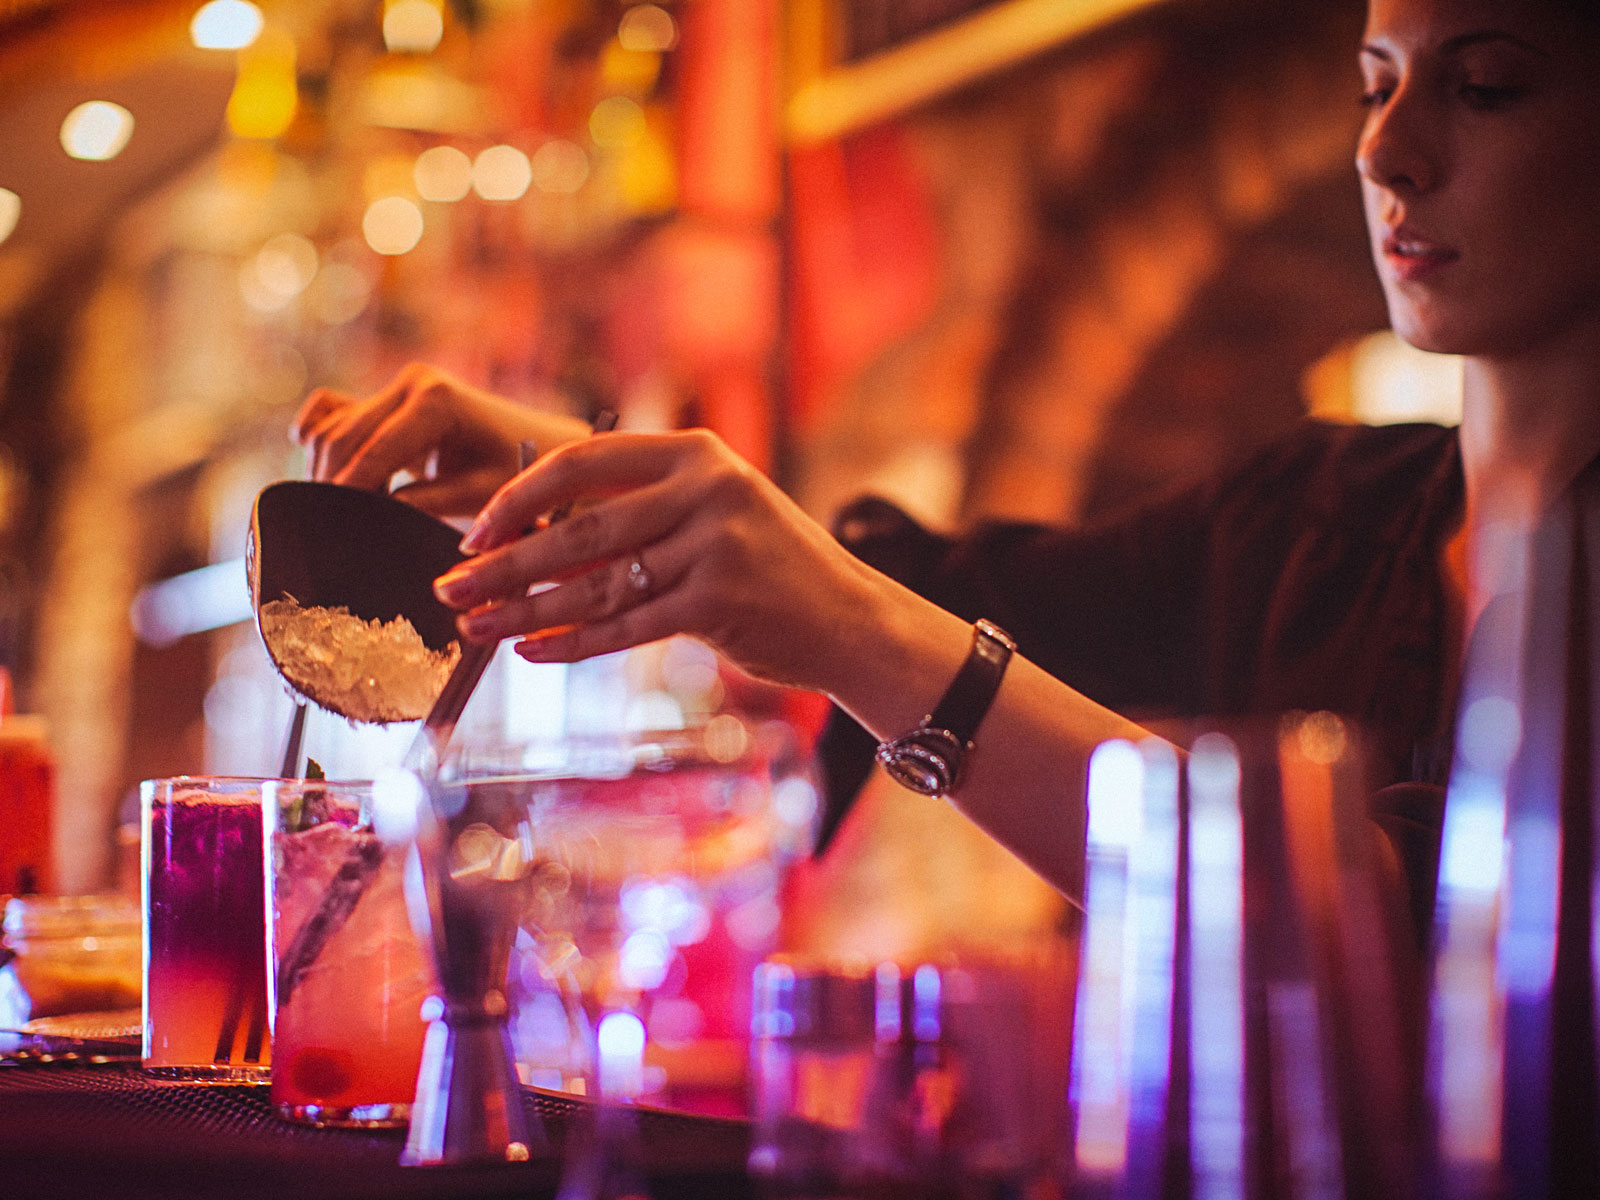 Bartenders Least Favorite Drinks